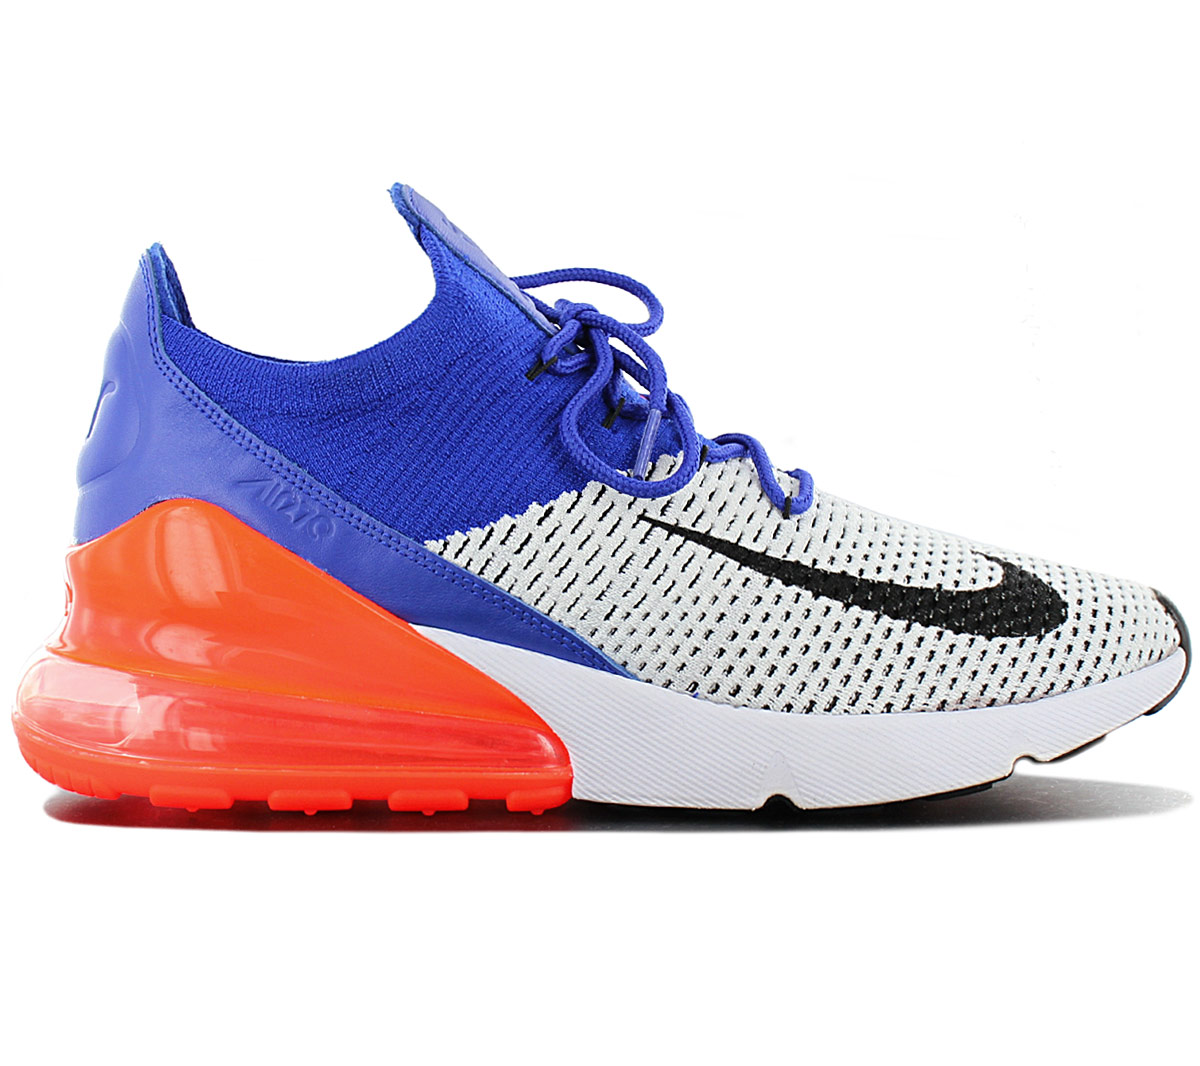 Details about Nike Air Max 270 Flyknit Ultramarine AO1023 101 Men's Sneakers Shoes New